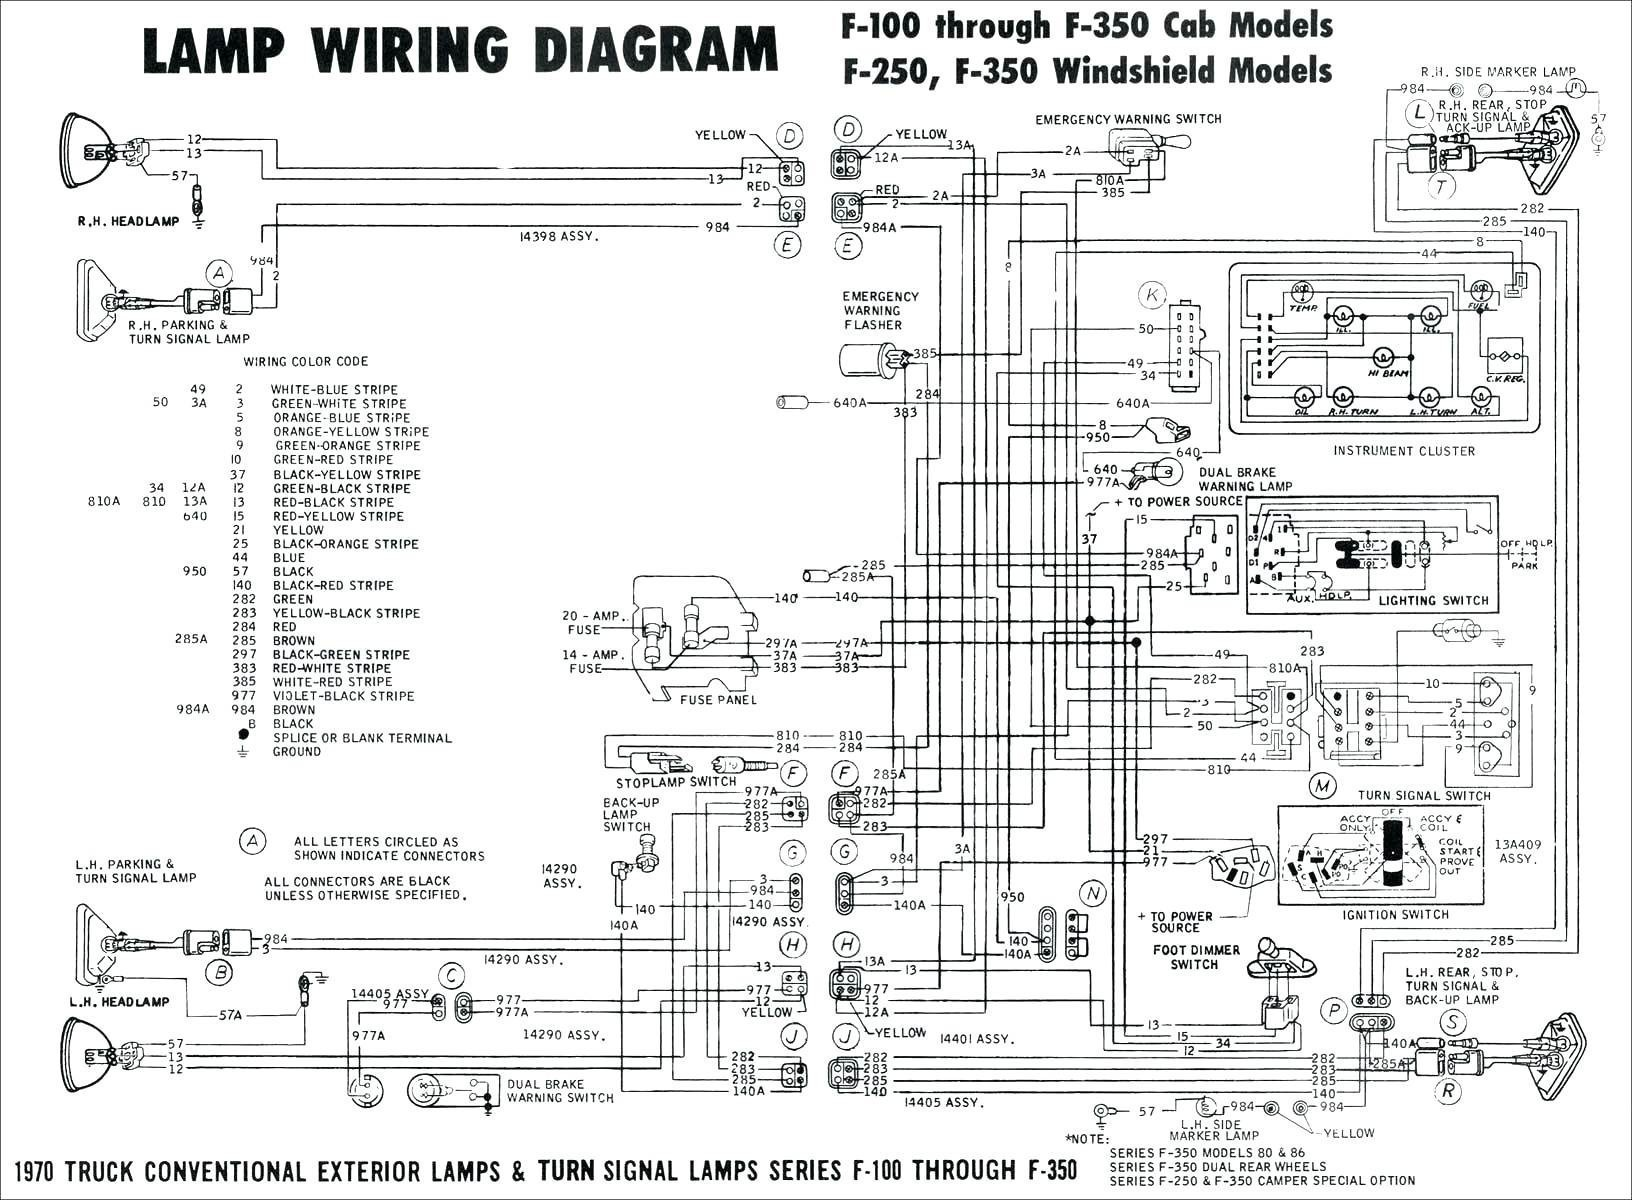 3 Phase Switch Wiring Diagram Lovely 3 Phase Wire Diagram Light